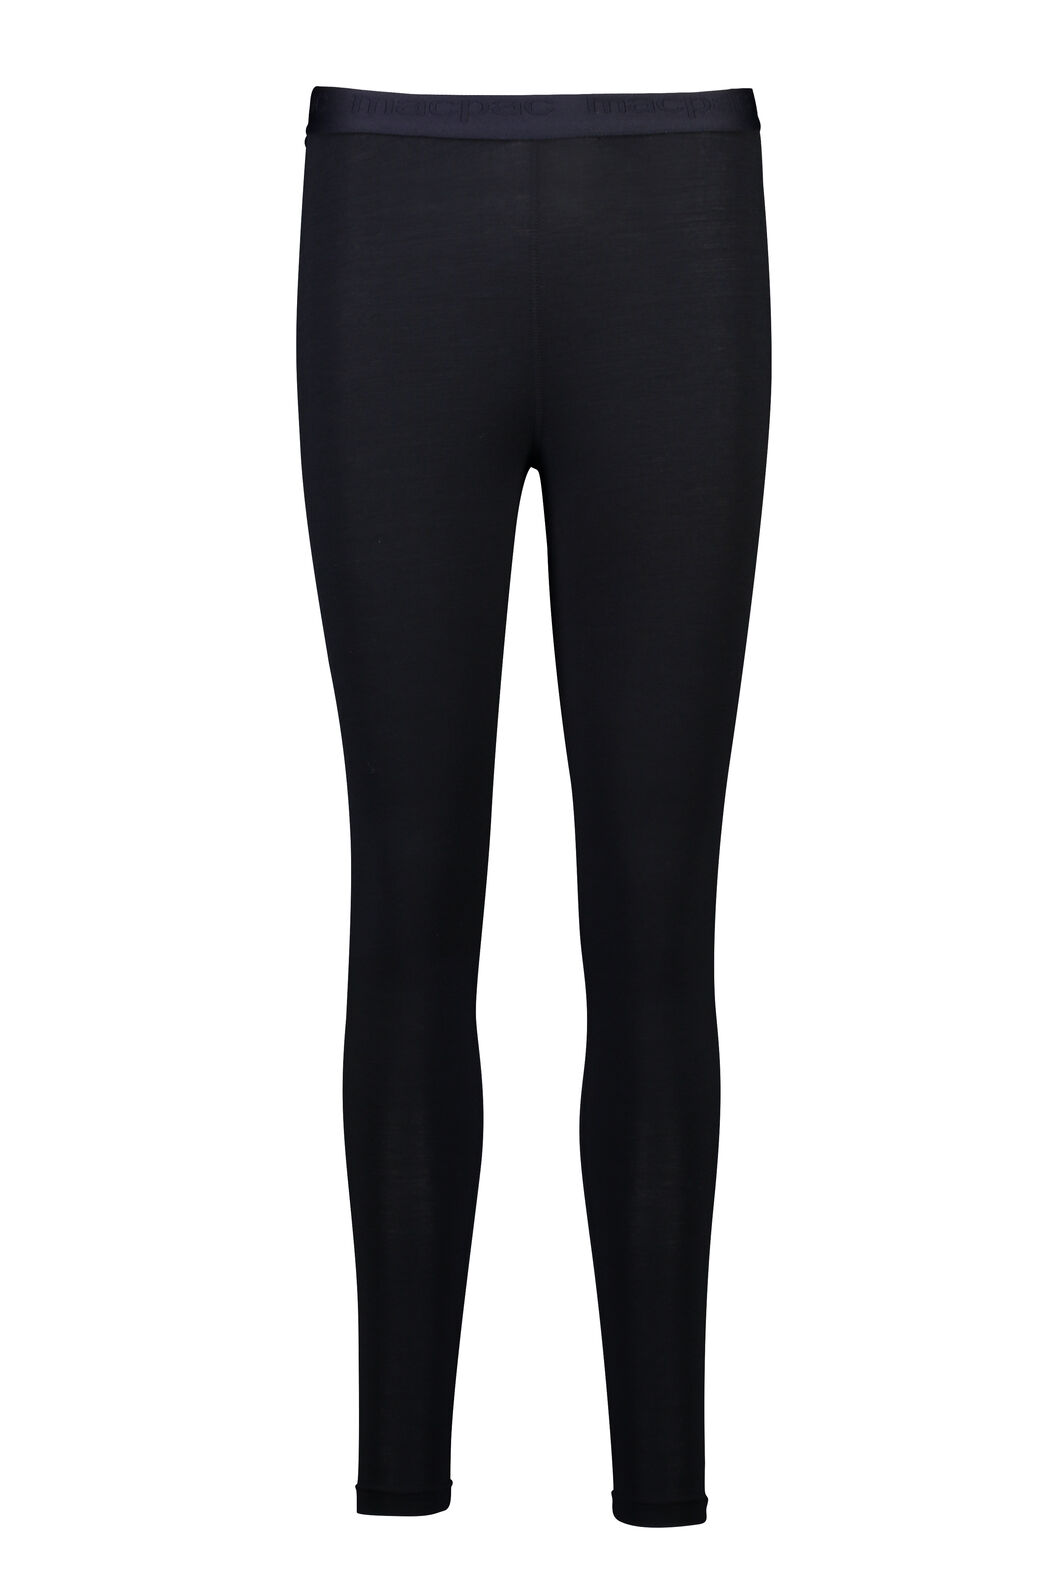 Macpac 180 Merino Long Johns — Women's, Black, hi-res